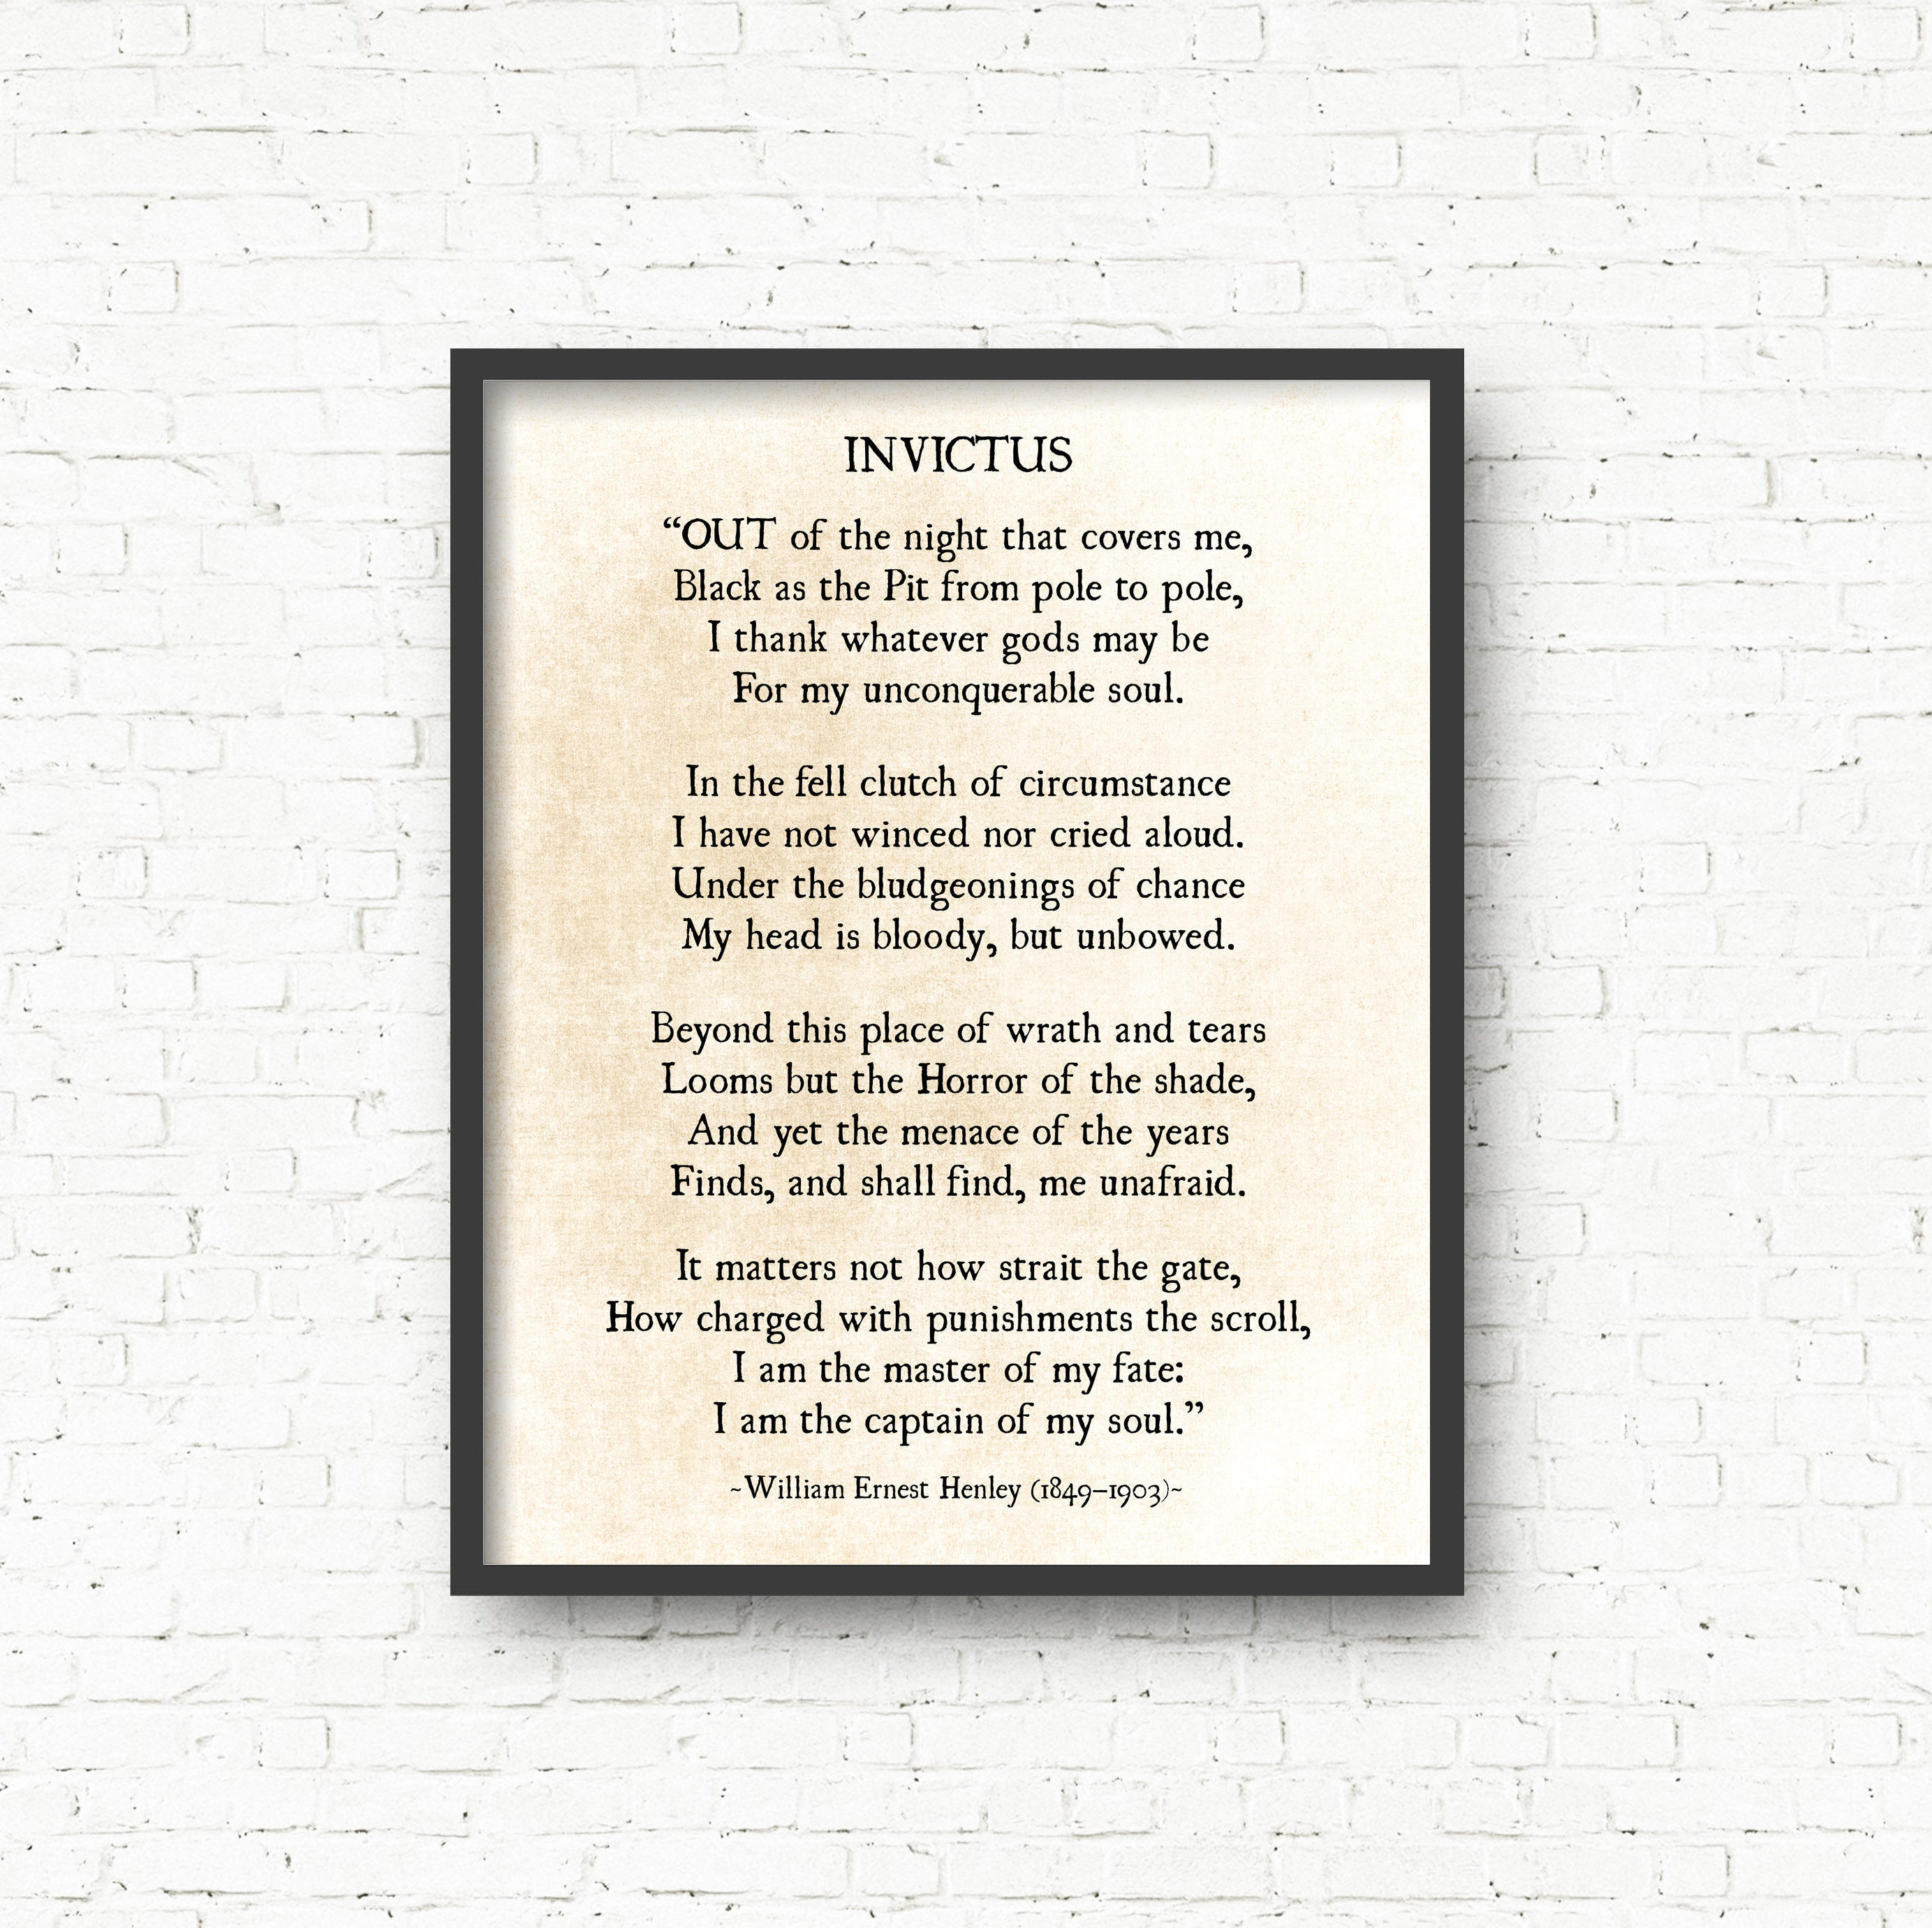 invictus by william ernest henley an Invictus annalistic essay invictus by william ernest henley is a powerful poem portraying the fate of human beings the author clearly is writing about his own struggles for his pain is obvious in the poem henley suffered.